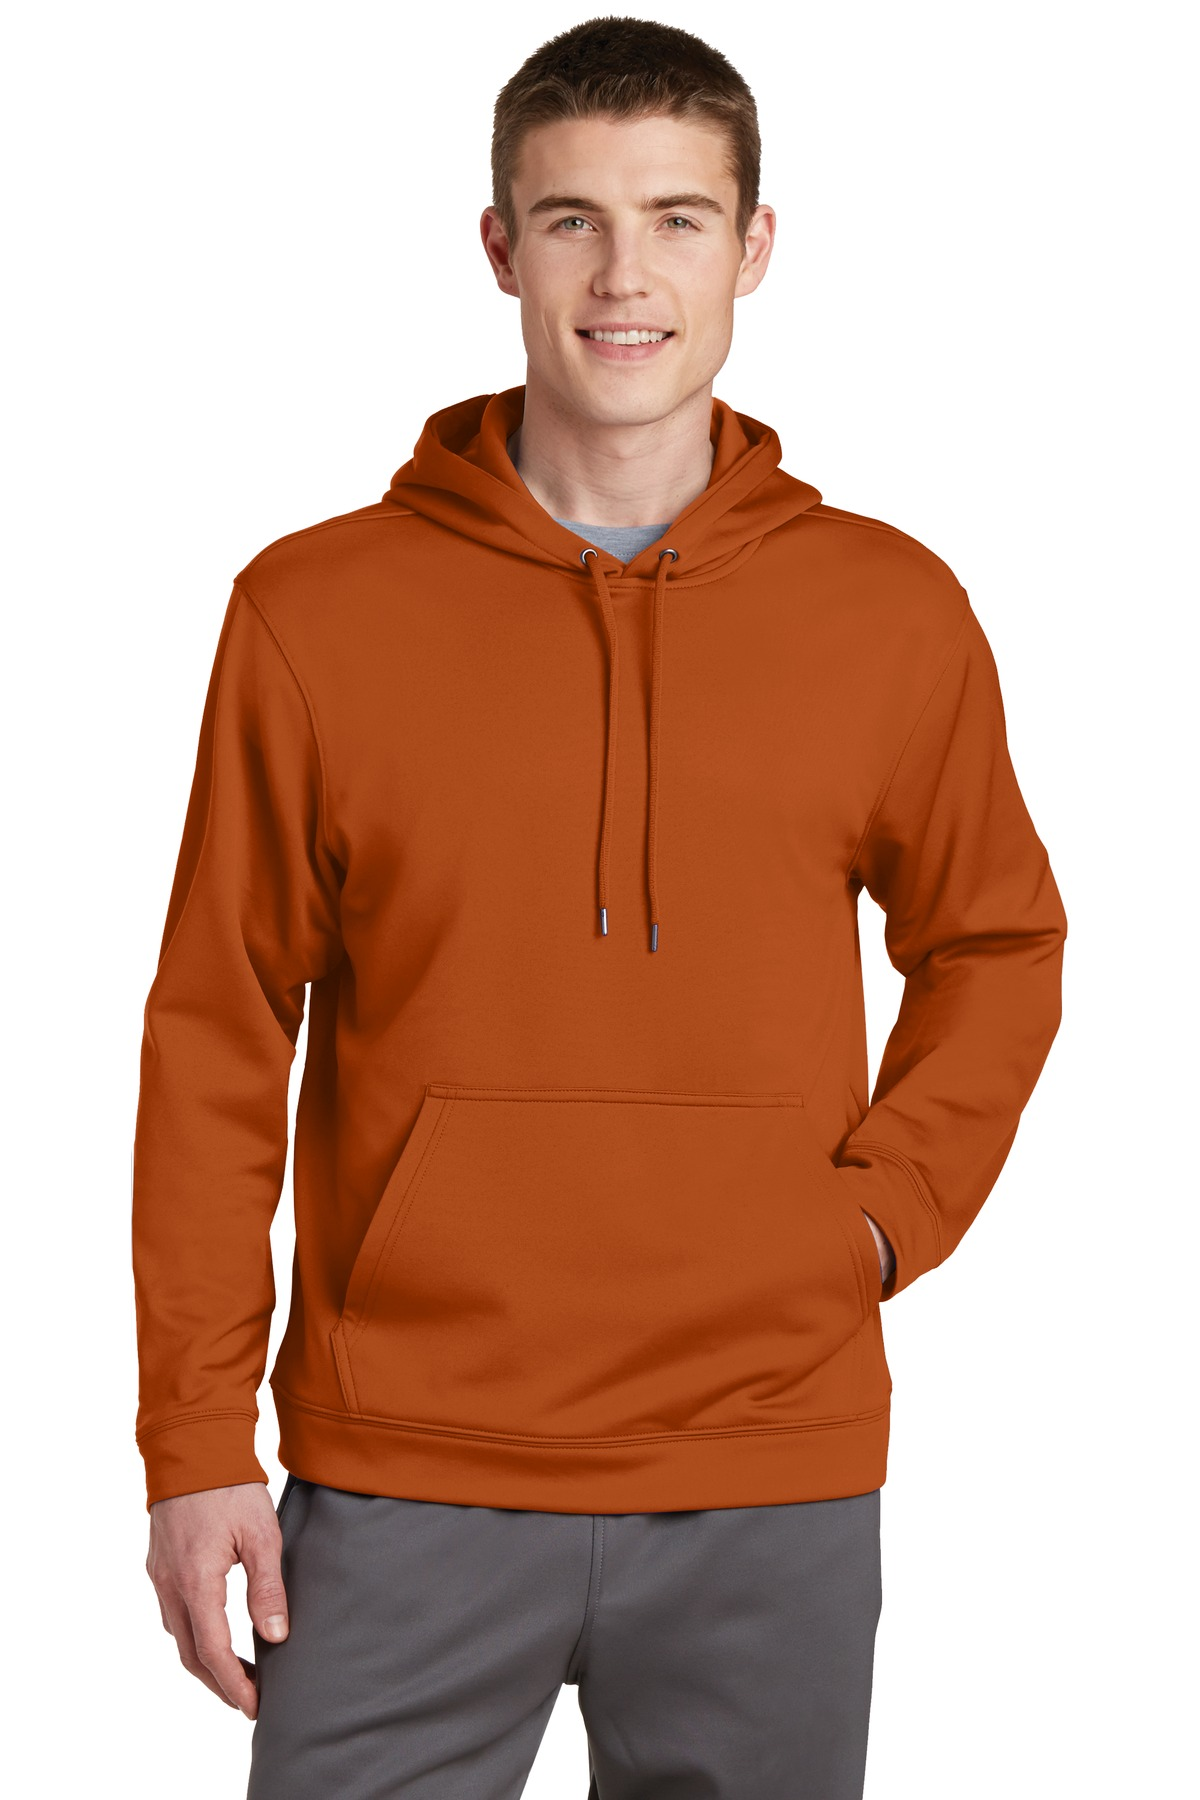 Sport-Tek ®  Sport-Wick ®  Fleece Hooded Pullover.  F244 - Texas Orange